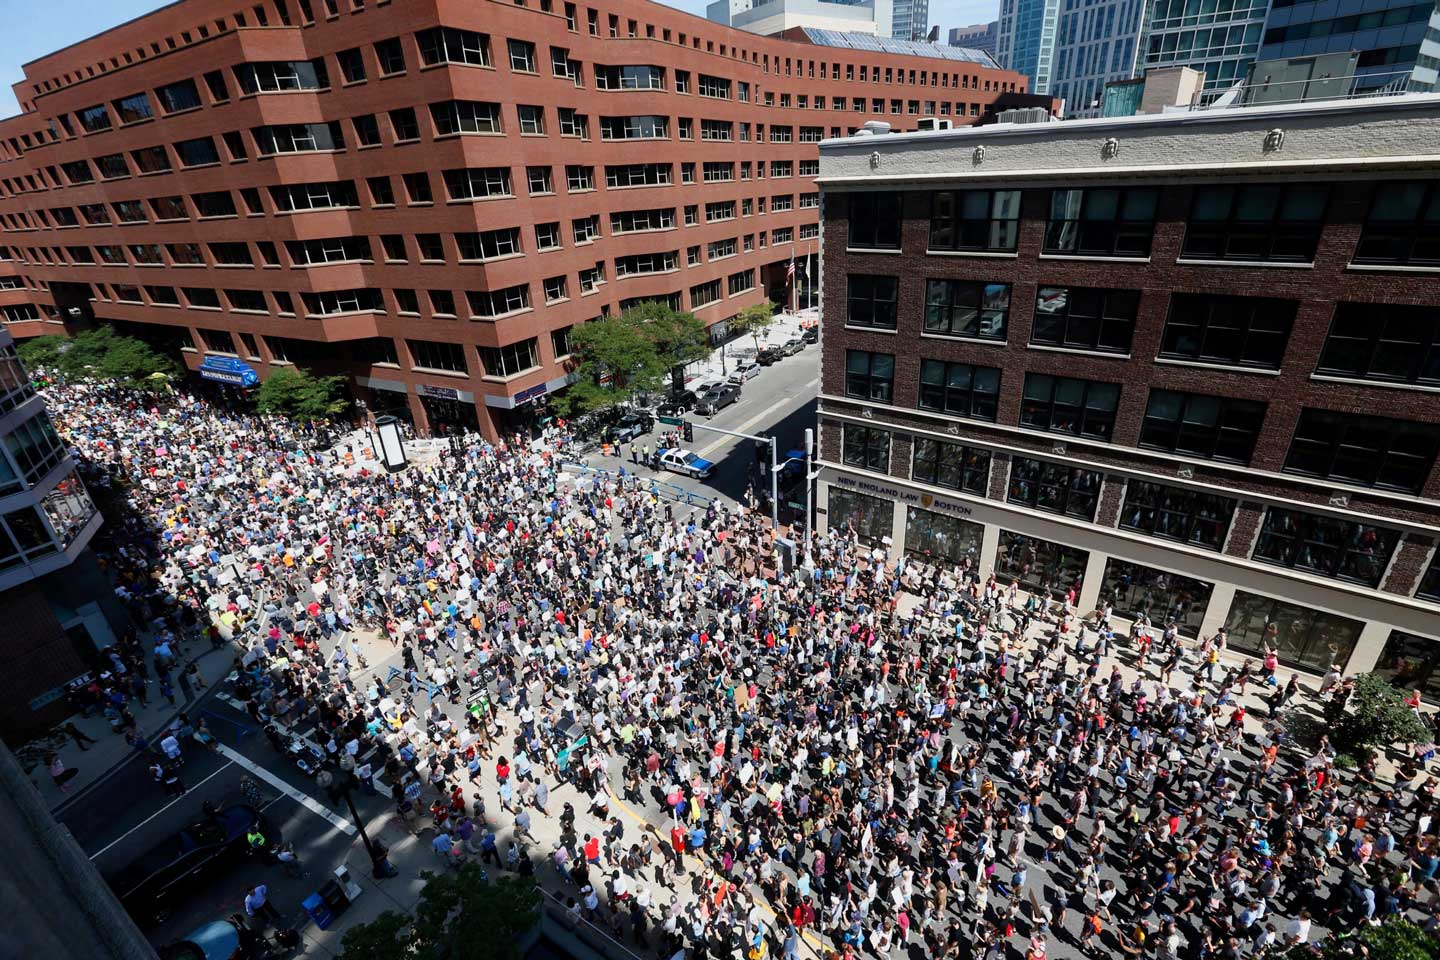 Thousands of counter protesters marching to a planned 'Free Speech Rally' on Boston Common on August 19, 2017 in Boston, Massachusetts. Thousands of demonstrators and counter-protestors are expected at Boston Common where the Boston Free Speech Rally is being held. (Scott Eisen/Getty Images)